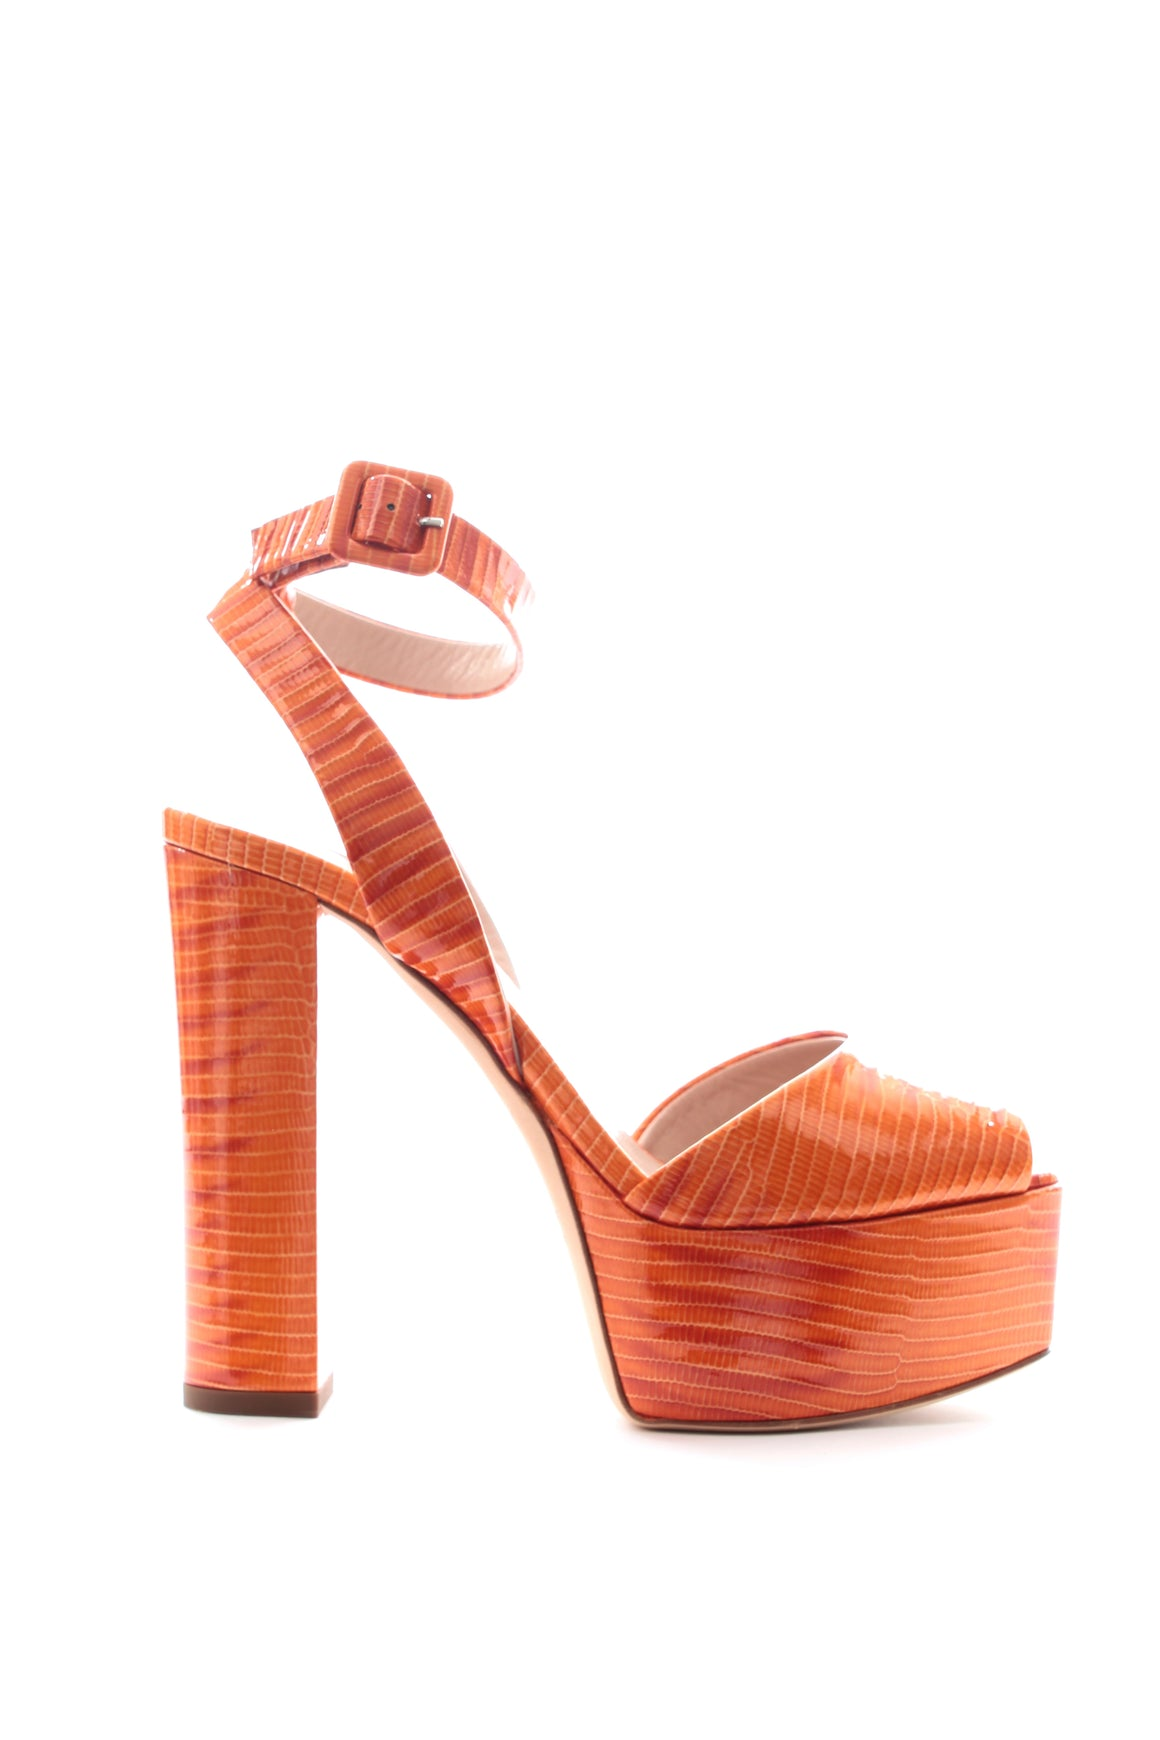 Giuseppe Zanotti Betty Platform Leather Sandals